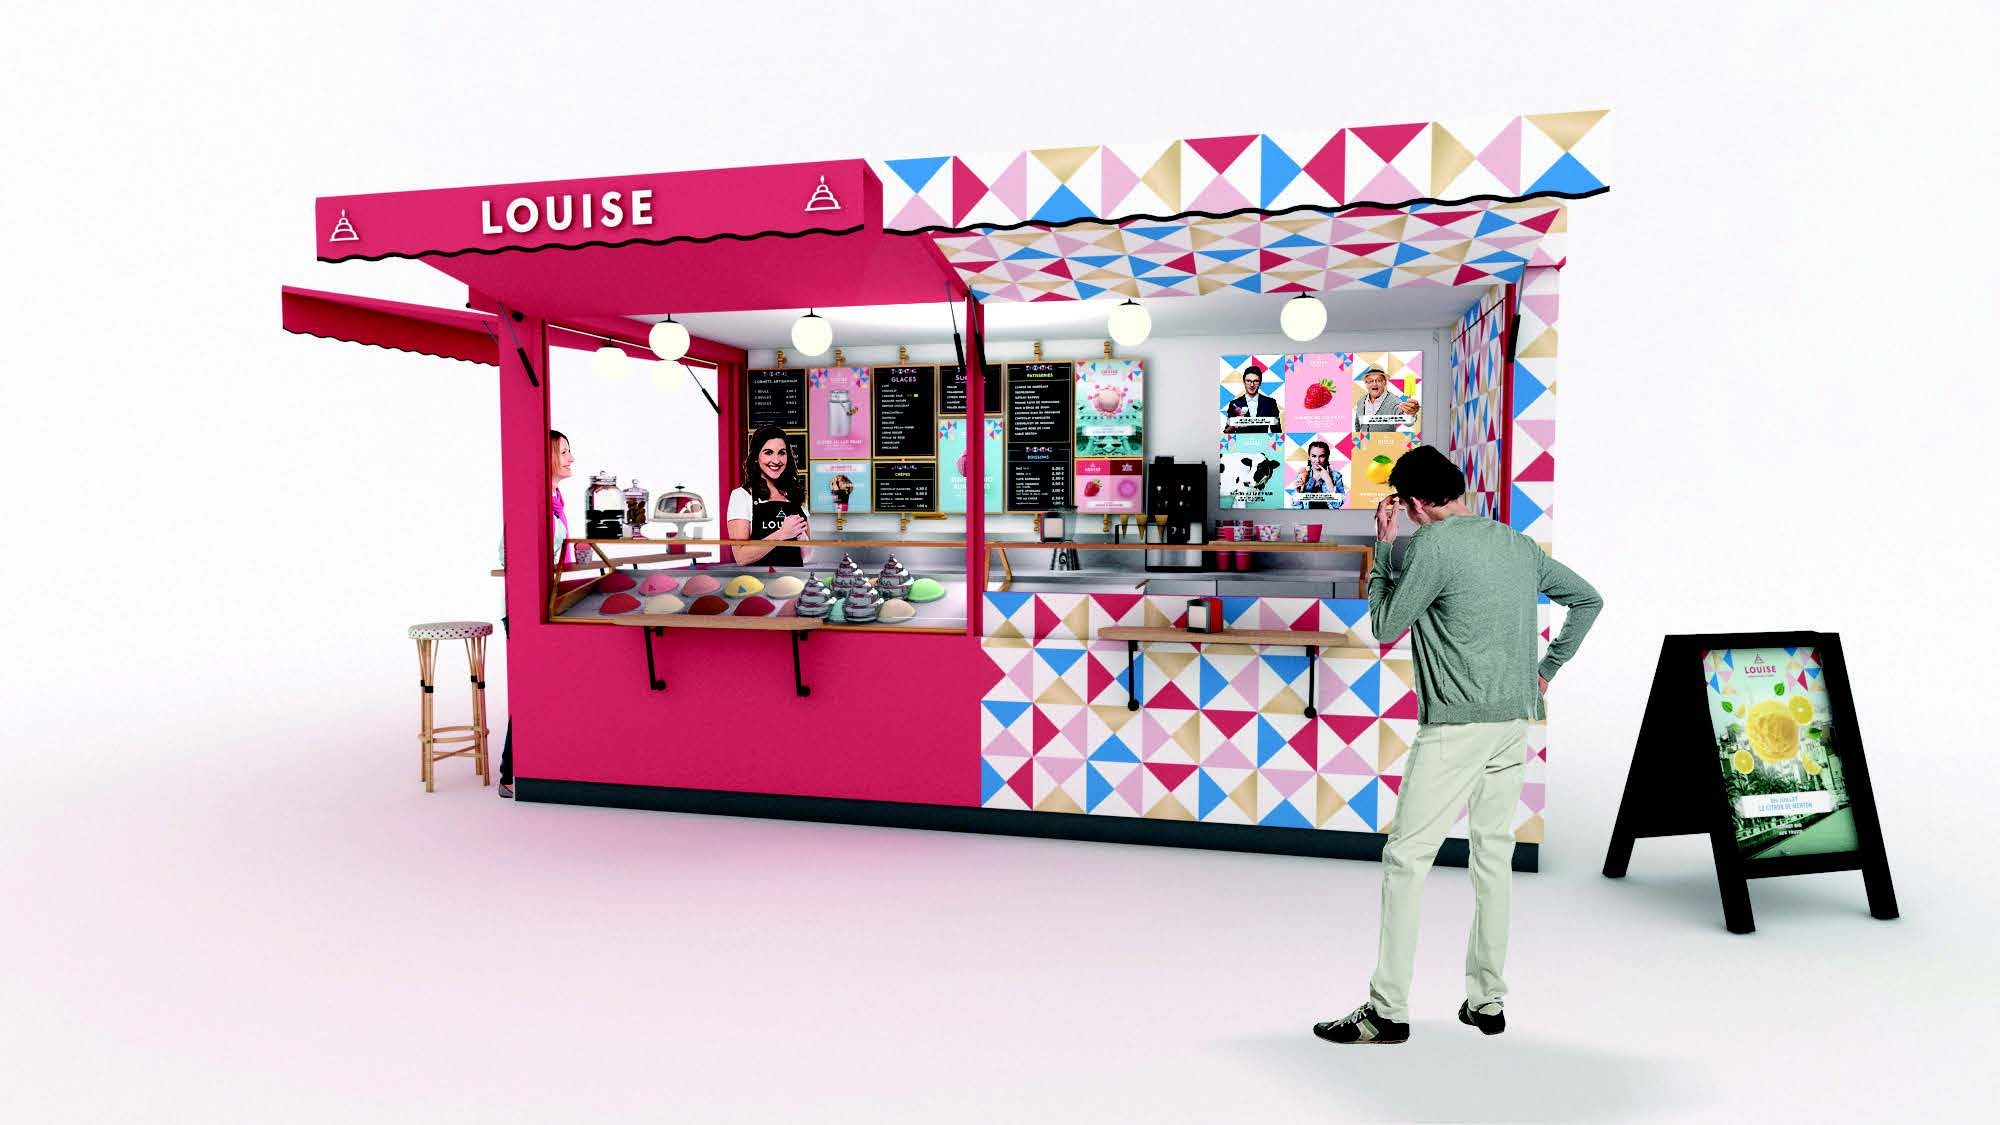 Kiosque Louise - Franchise de glacier